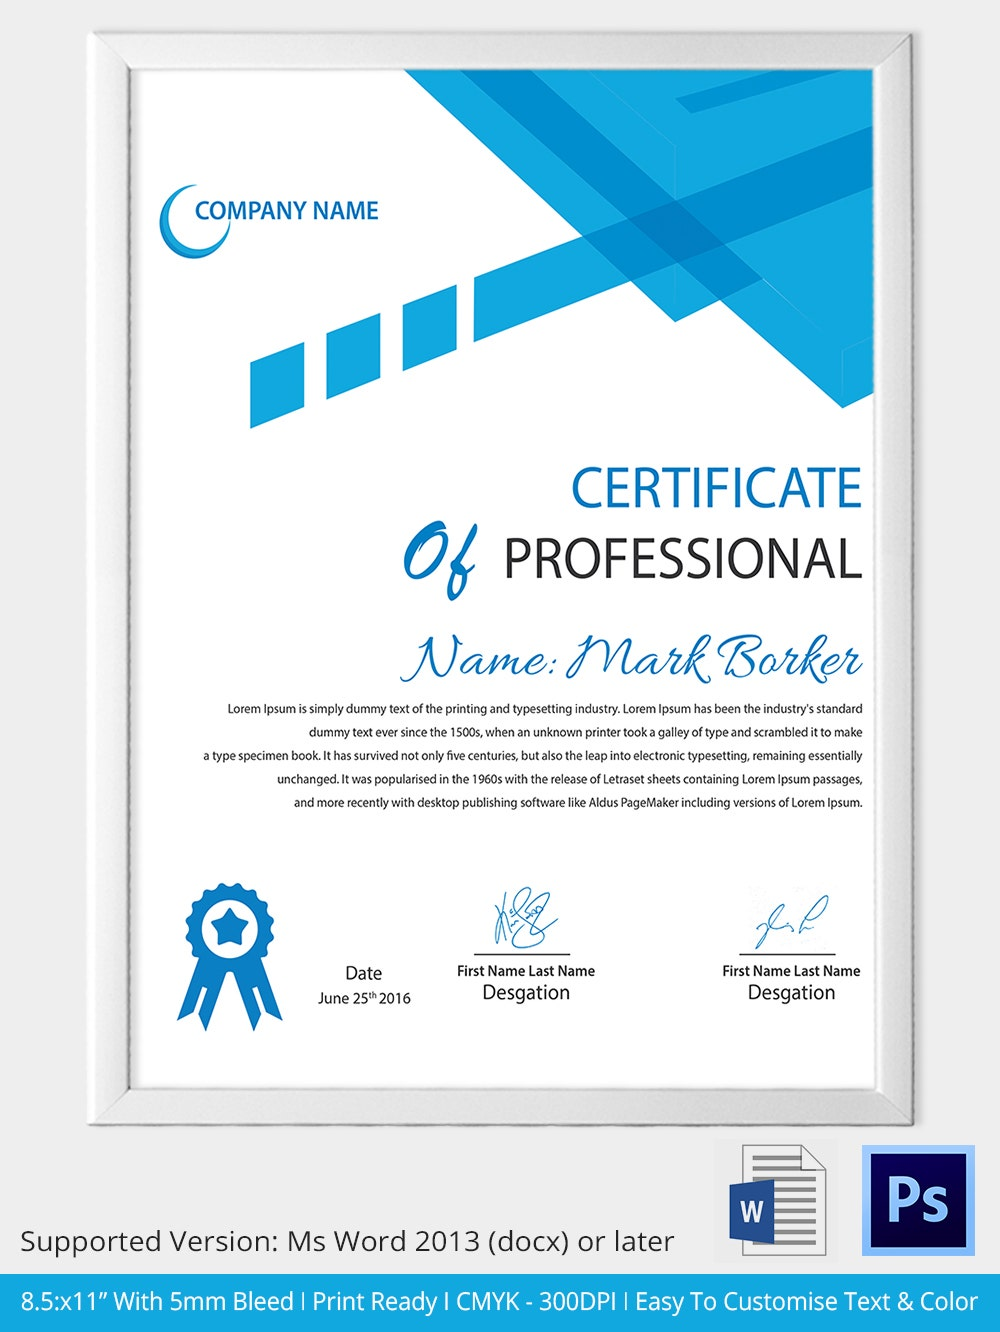 33 psd certificate templates free psd format download for Certificate template download